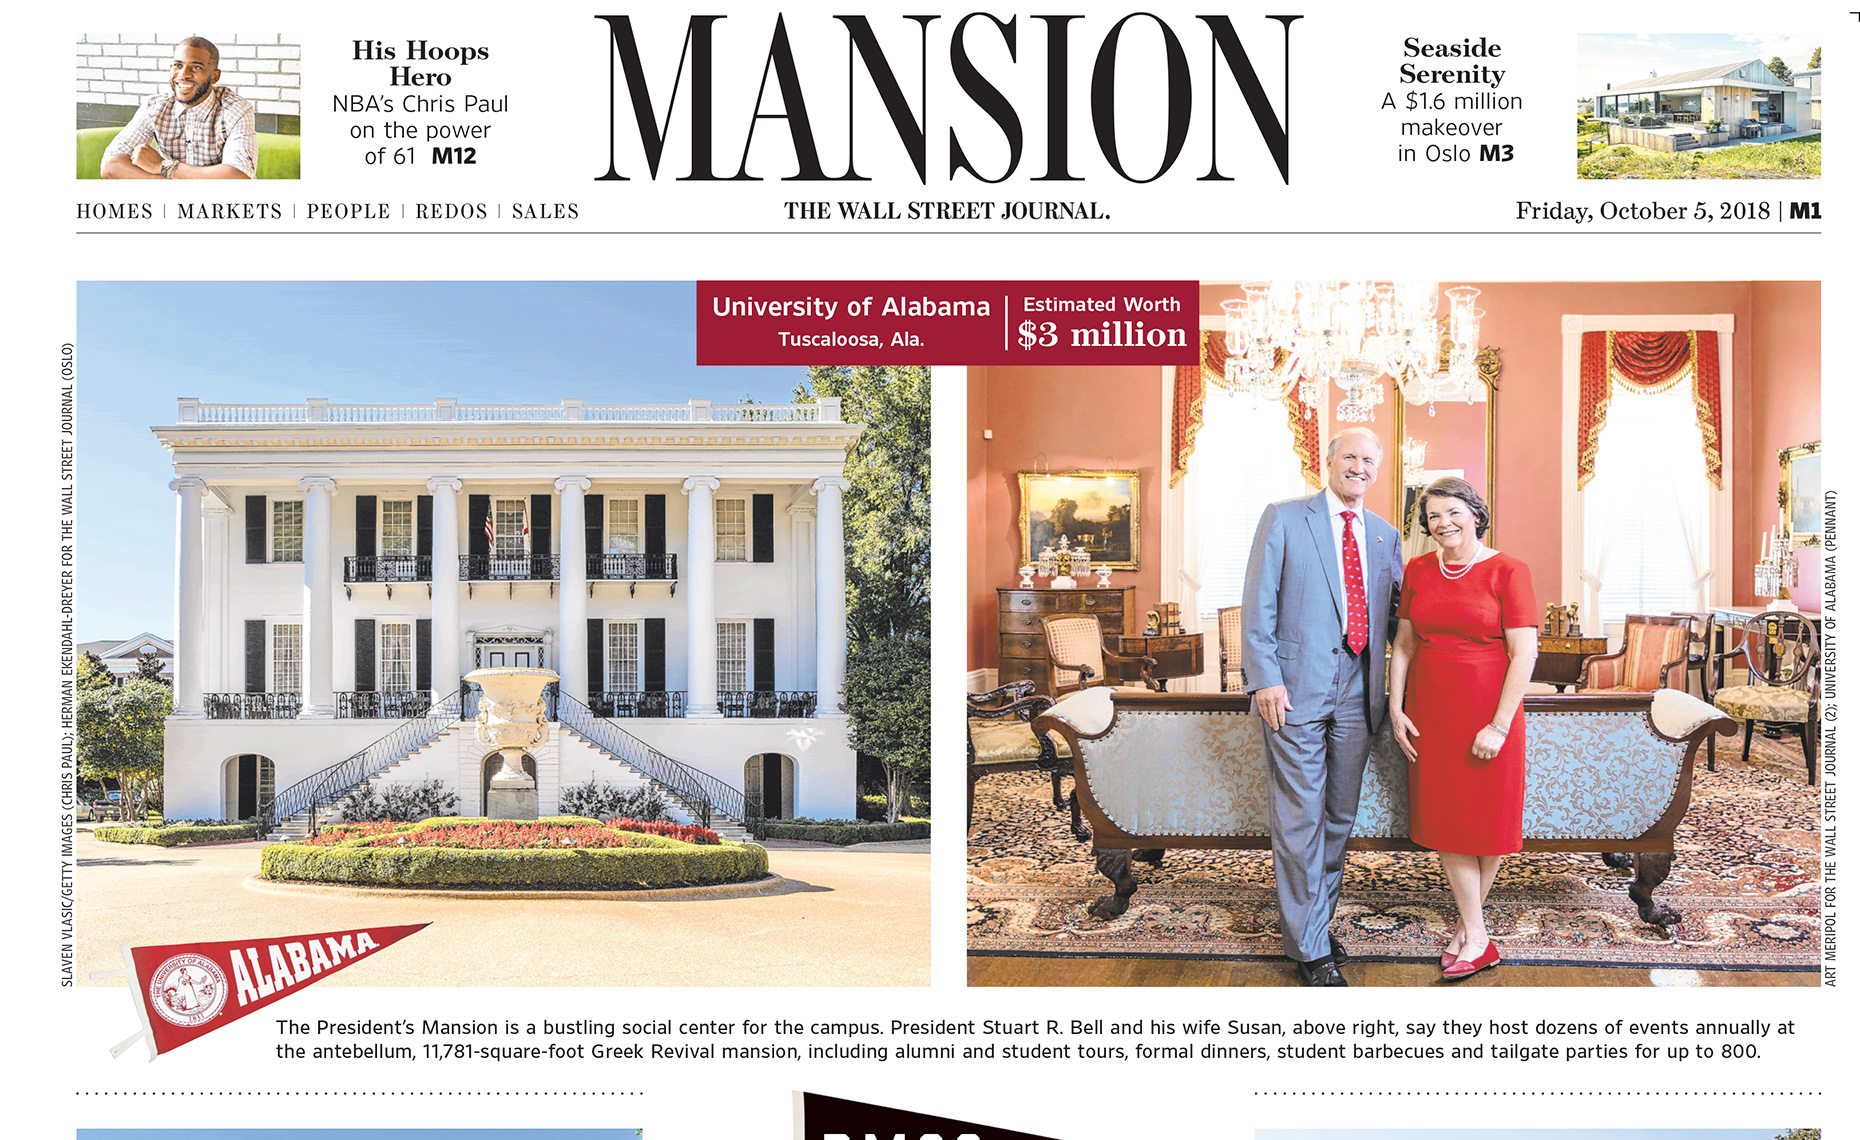 WSJ_Mansion_UofAwebpage